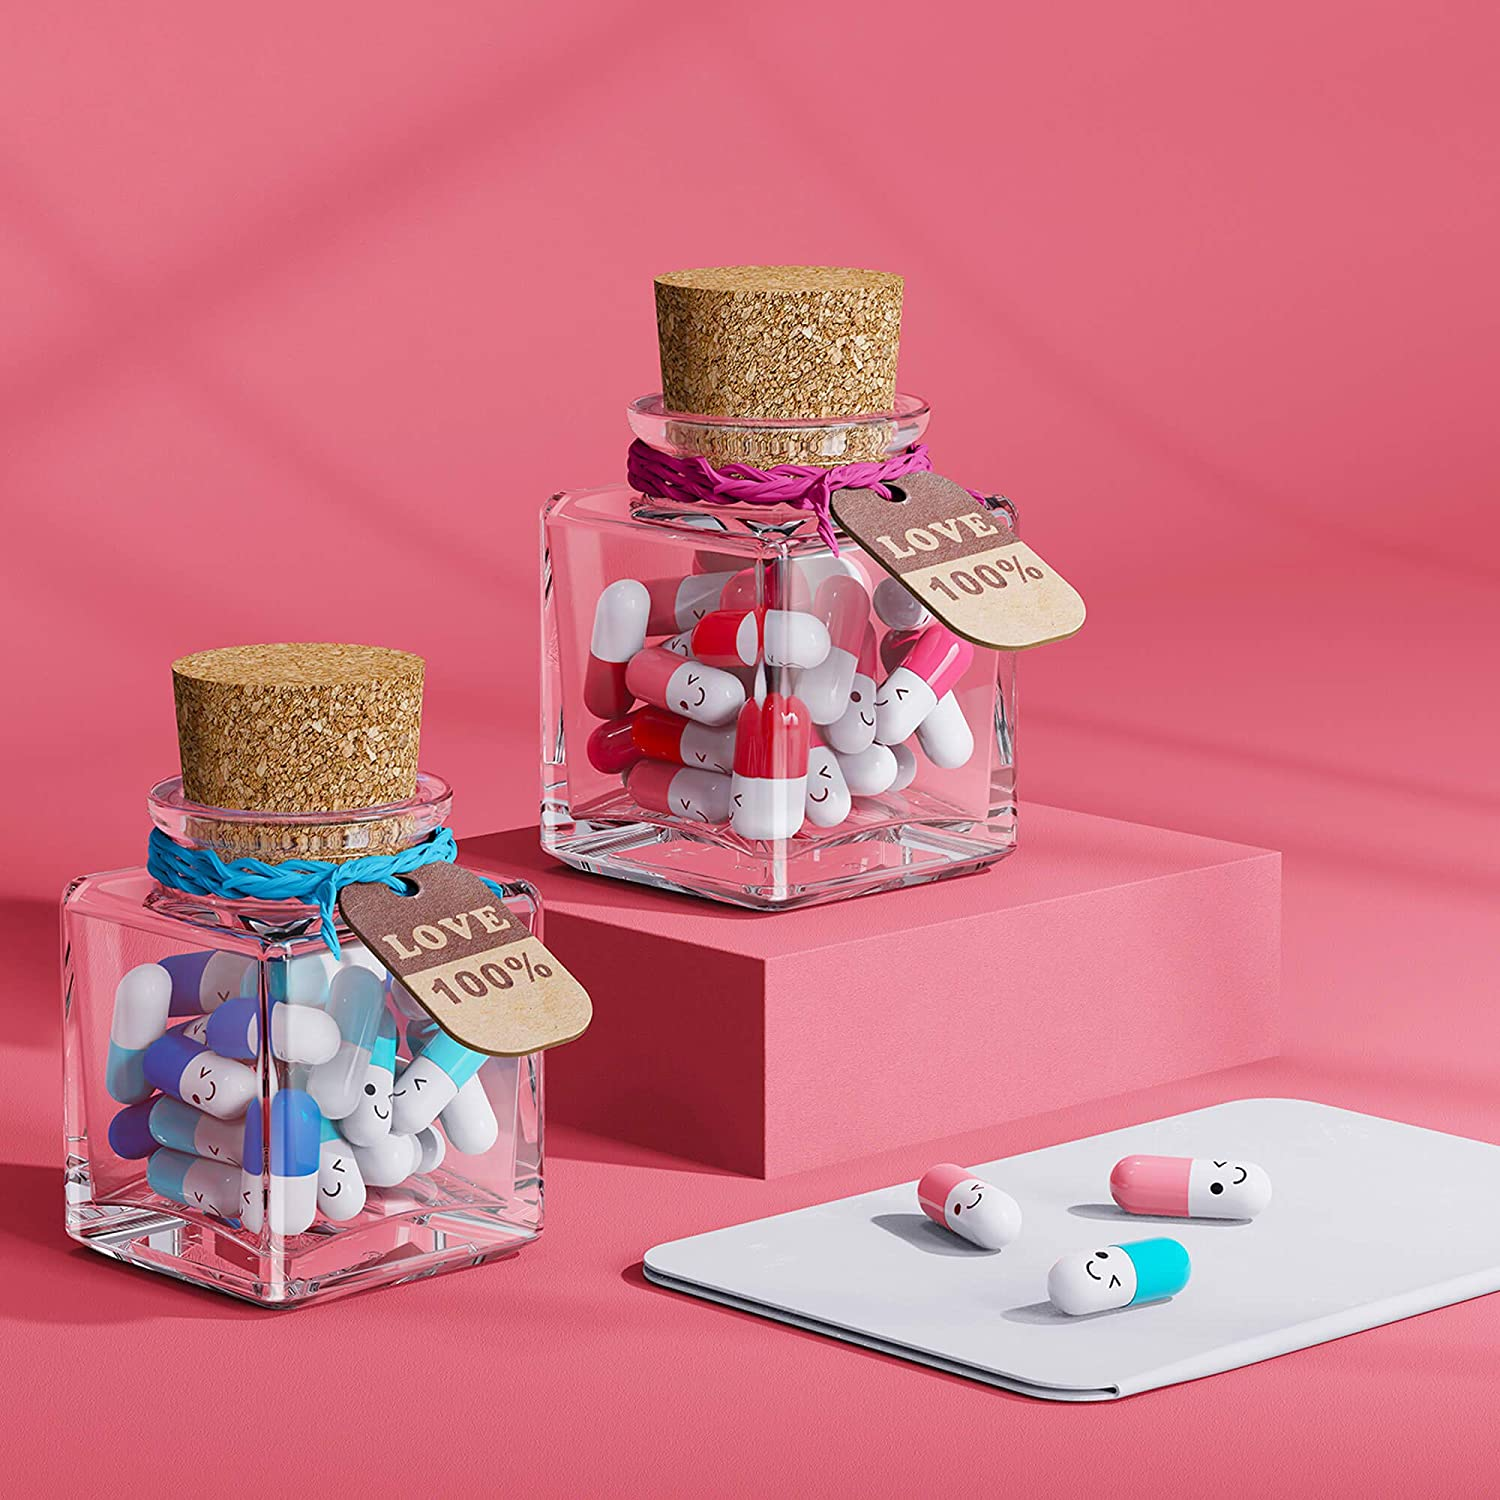 Mixed Blue /& Mixed Pink 50pcs Write Down Your Private Conversation JOFUYU Boyfriend/'s-Birthday Message Cute-Jar Matching-Couple The Coolest Gift for Boyfriend and Girlfriend